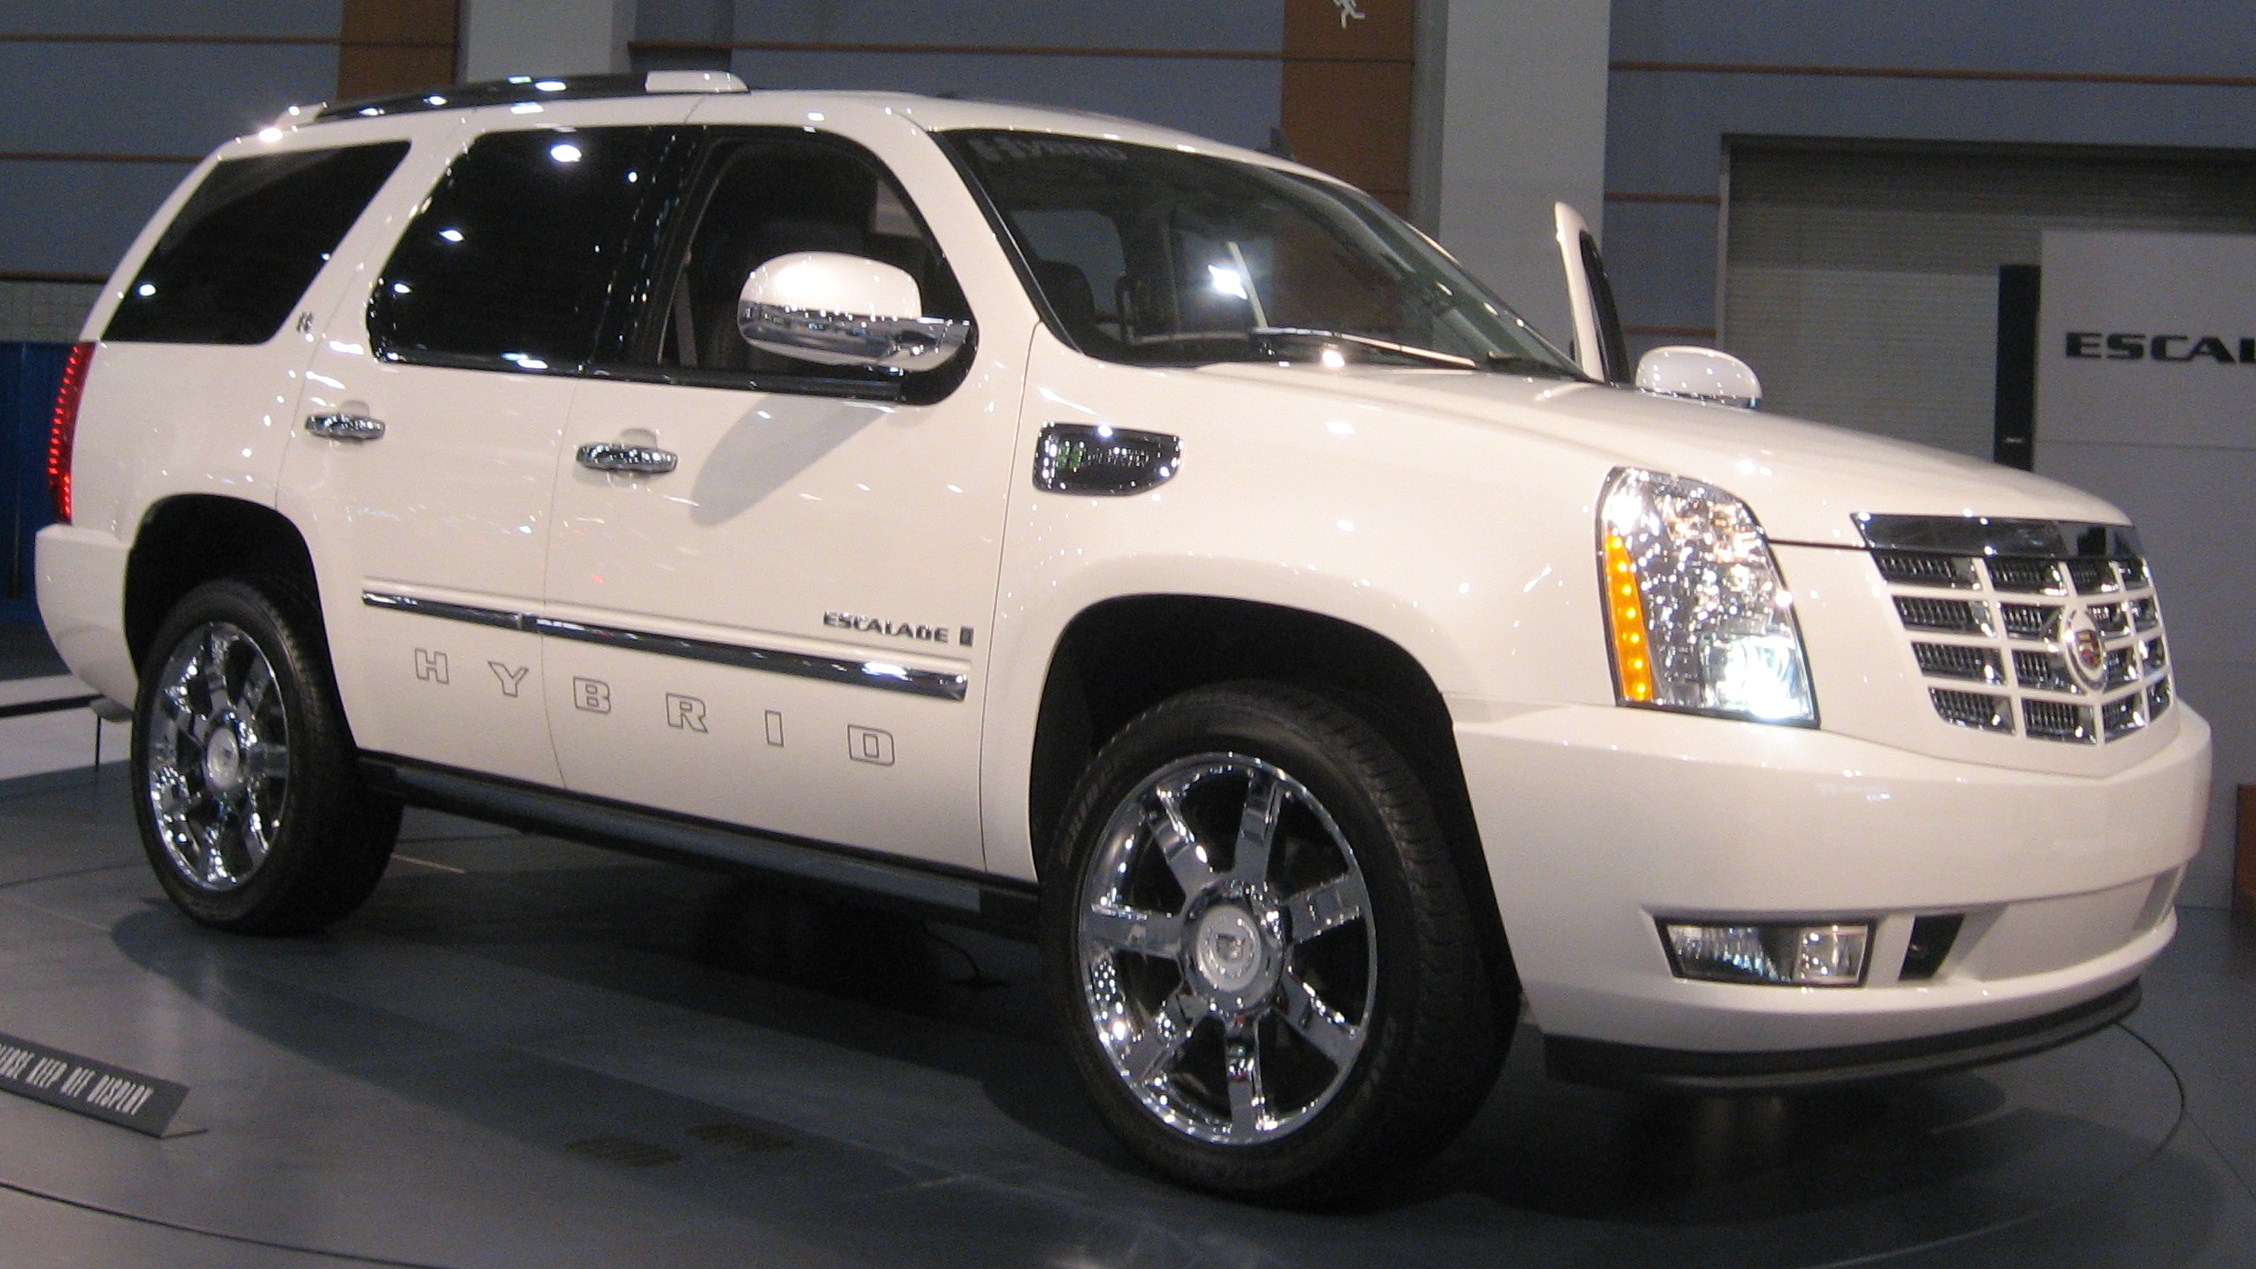 file:cadillac escalade hybrid dc - wikimedia commons